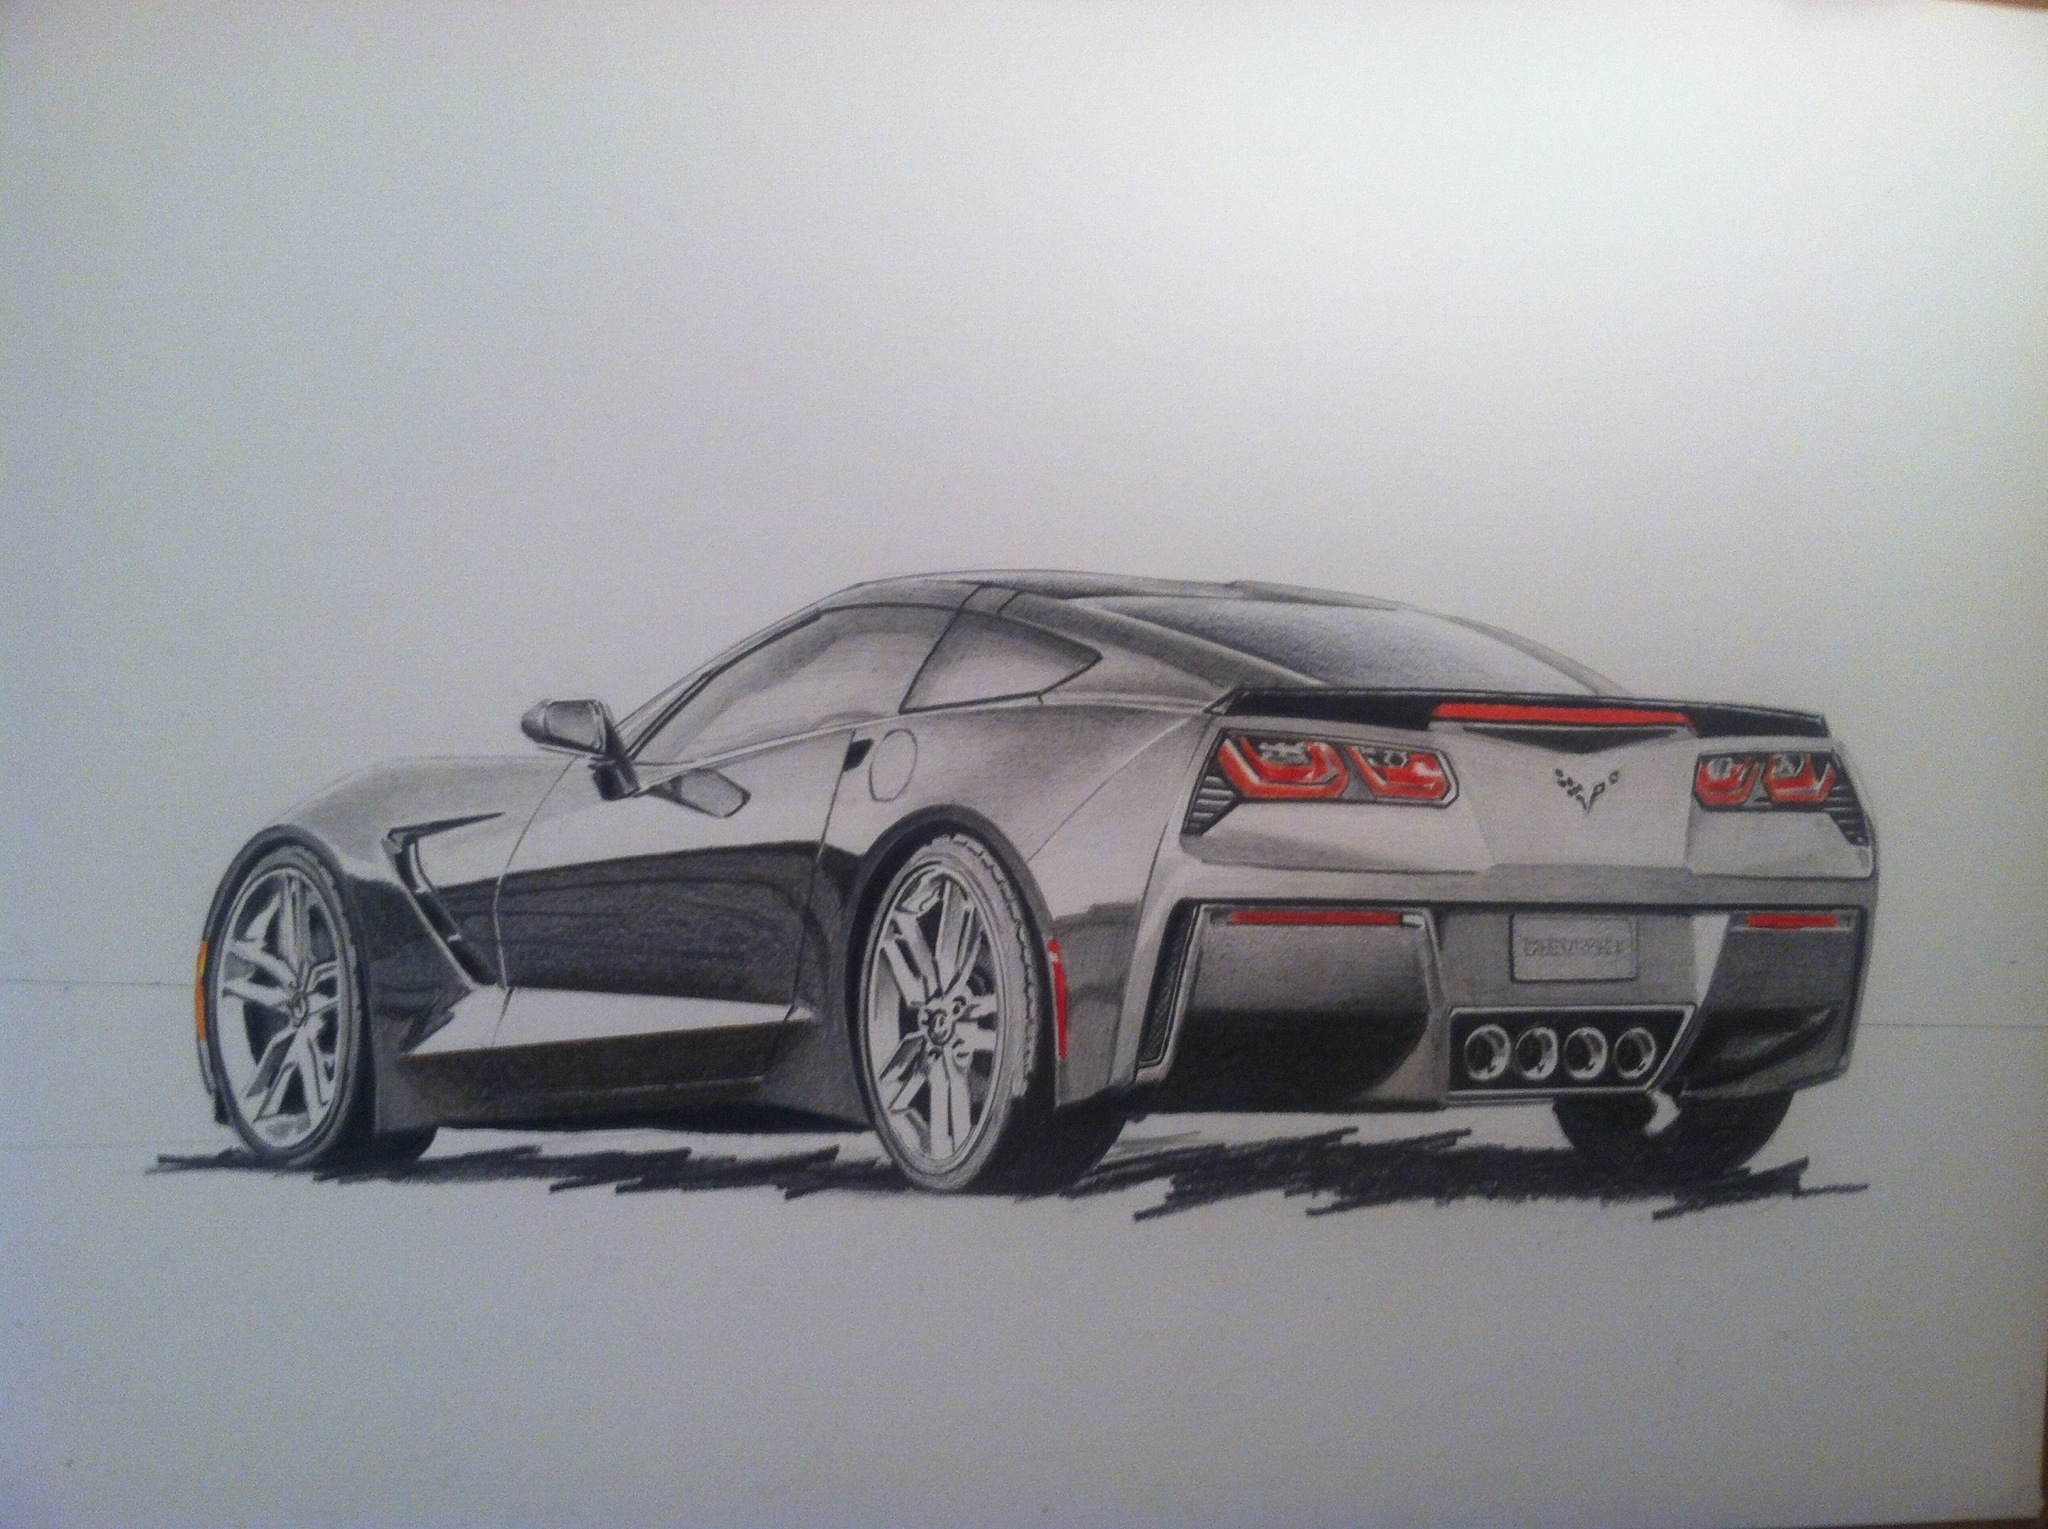 2048x1529 Here Some Images Of Cool Drawings Of Cars Made With Pencil